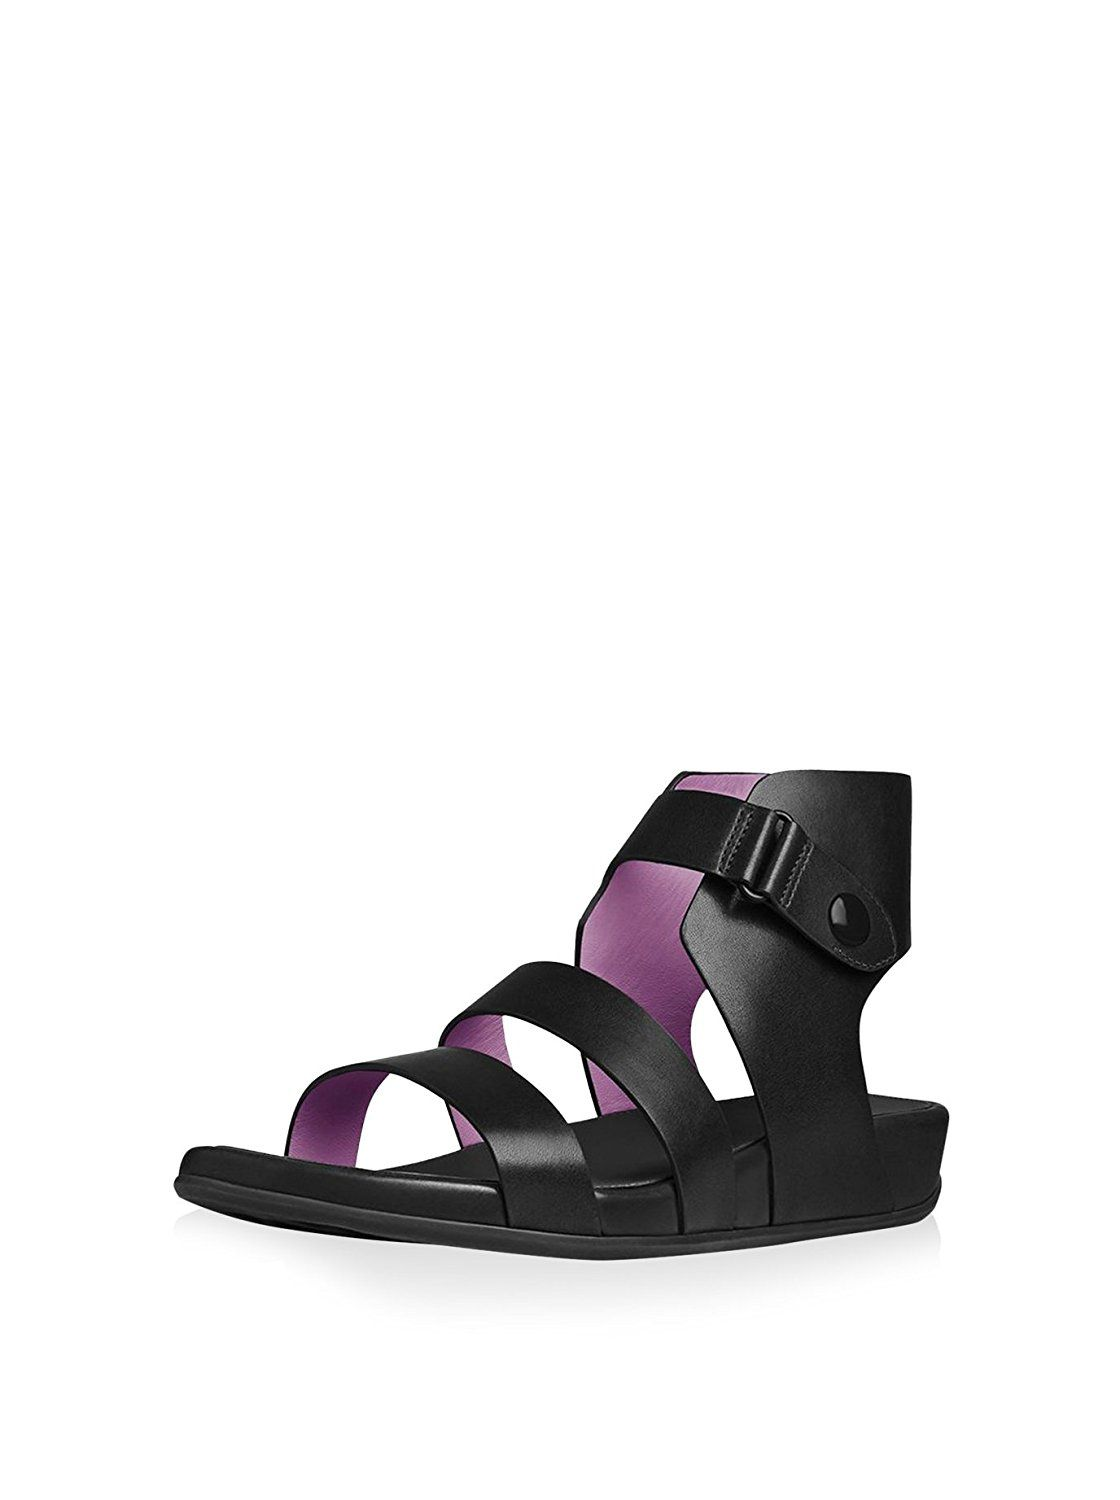 334c39ae7d15 FitFlop™ Gladdie™ Sandal    Review more details here   Gladiator sandals